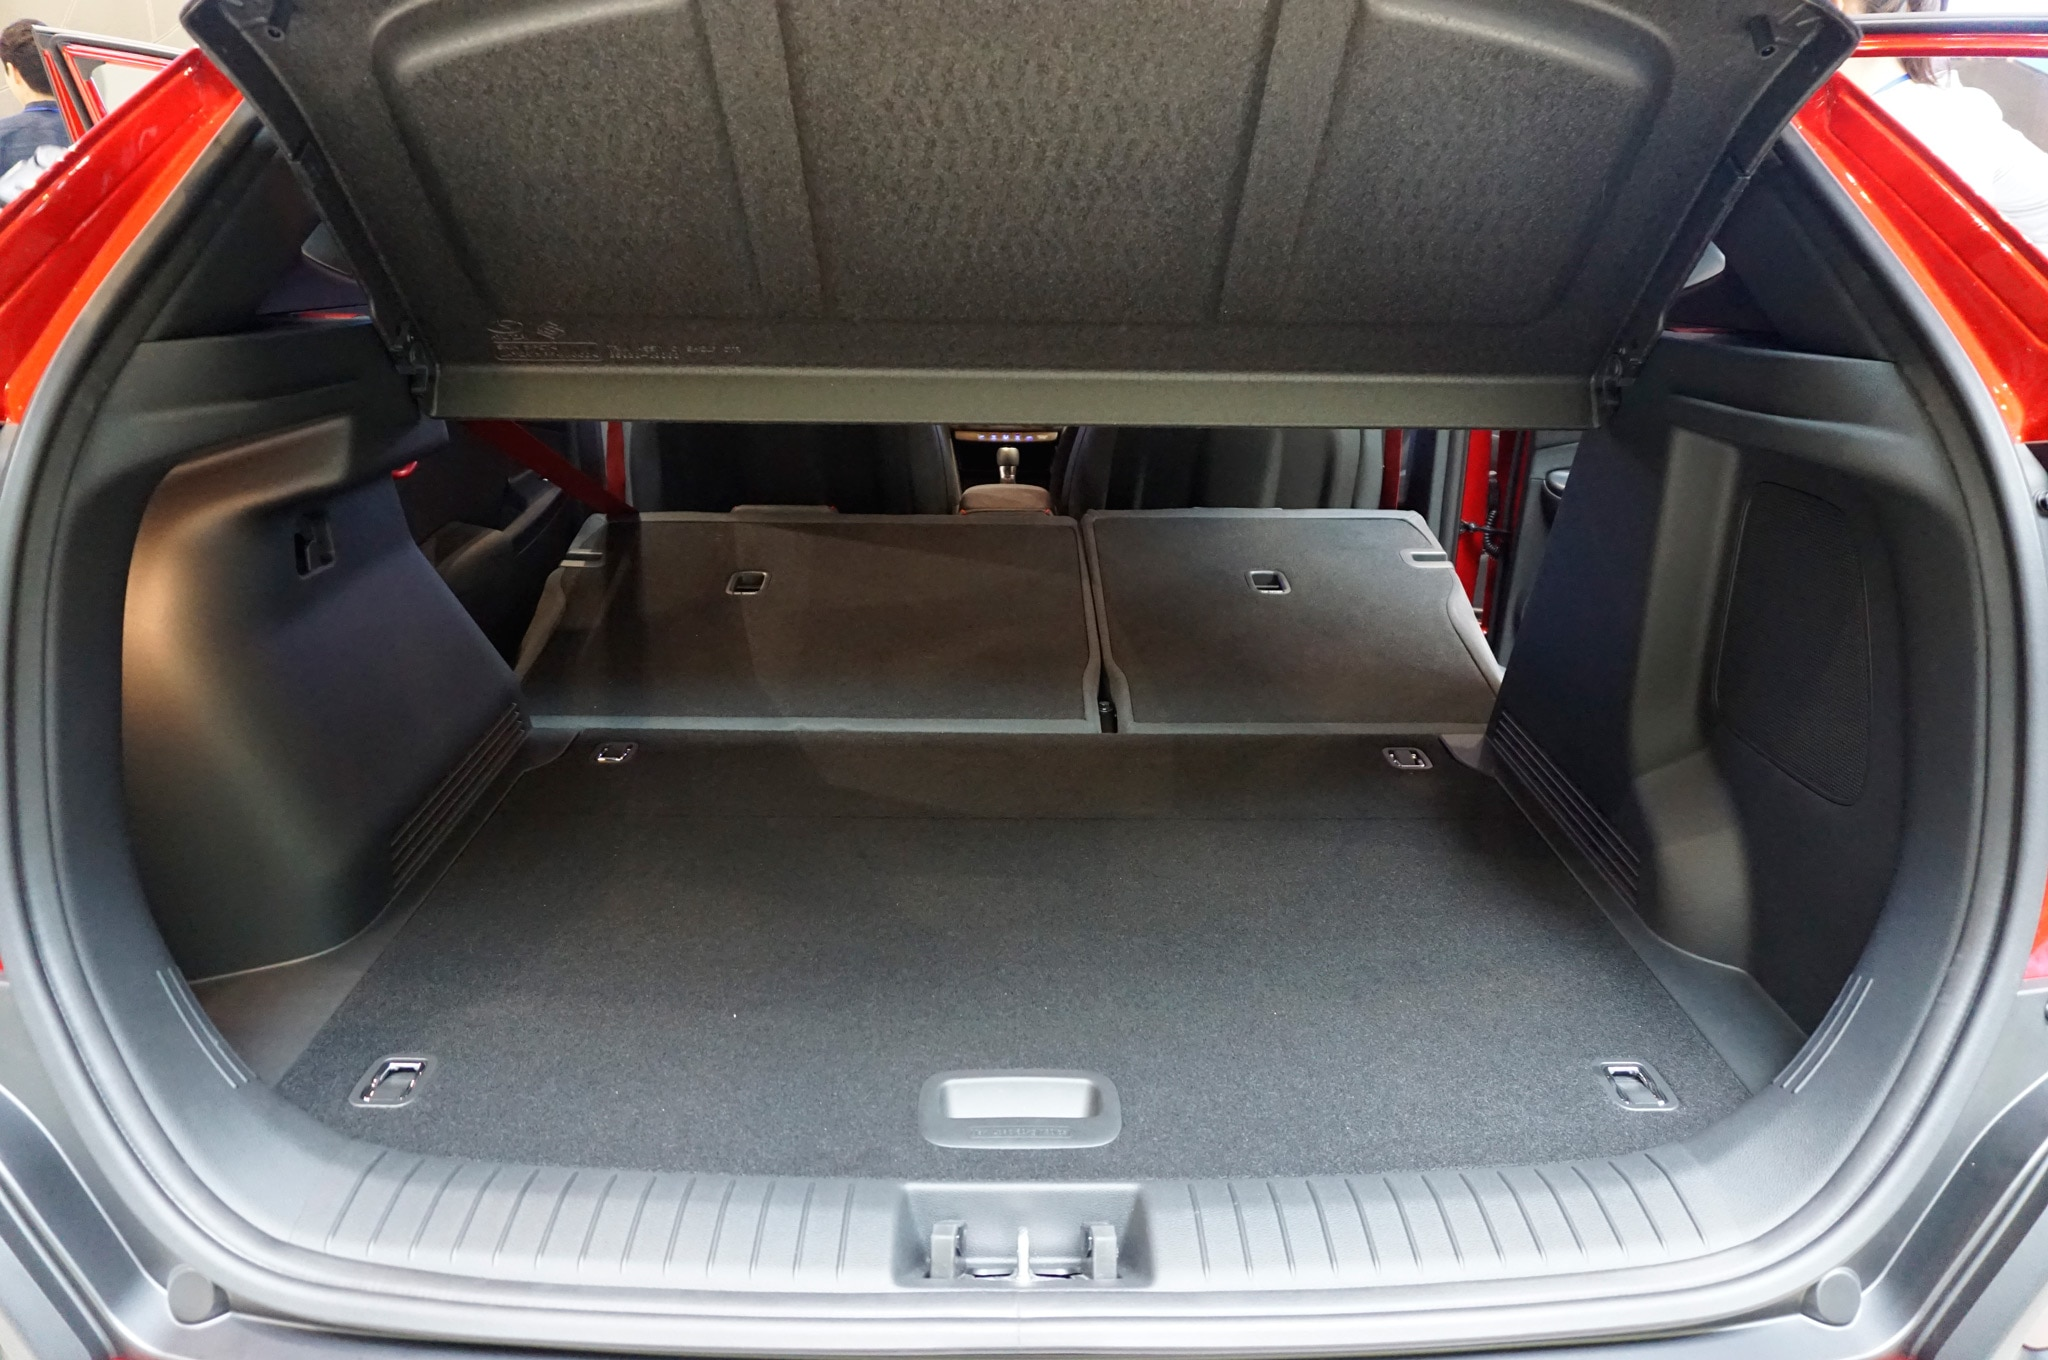 From The Beginning Of The Development There Was A Focus On Maximizing  Rear Seat Cargo Space And Storage Capacity. There Is A Focus On Appealing  To Urban ...